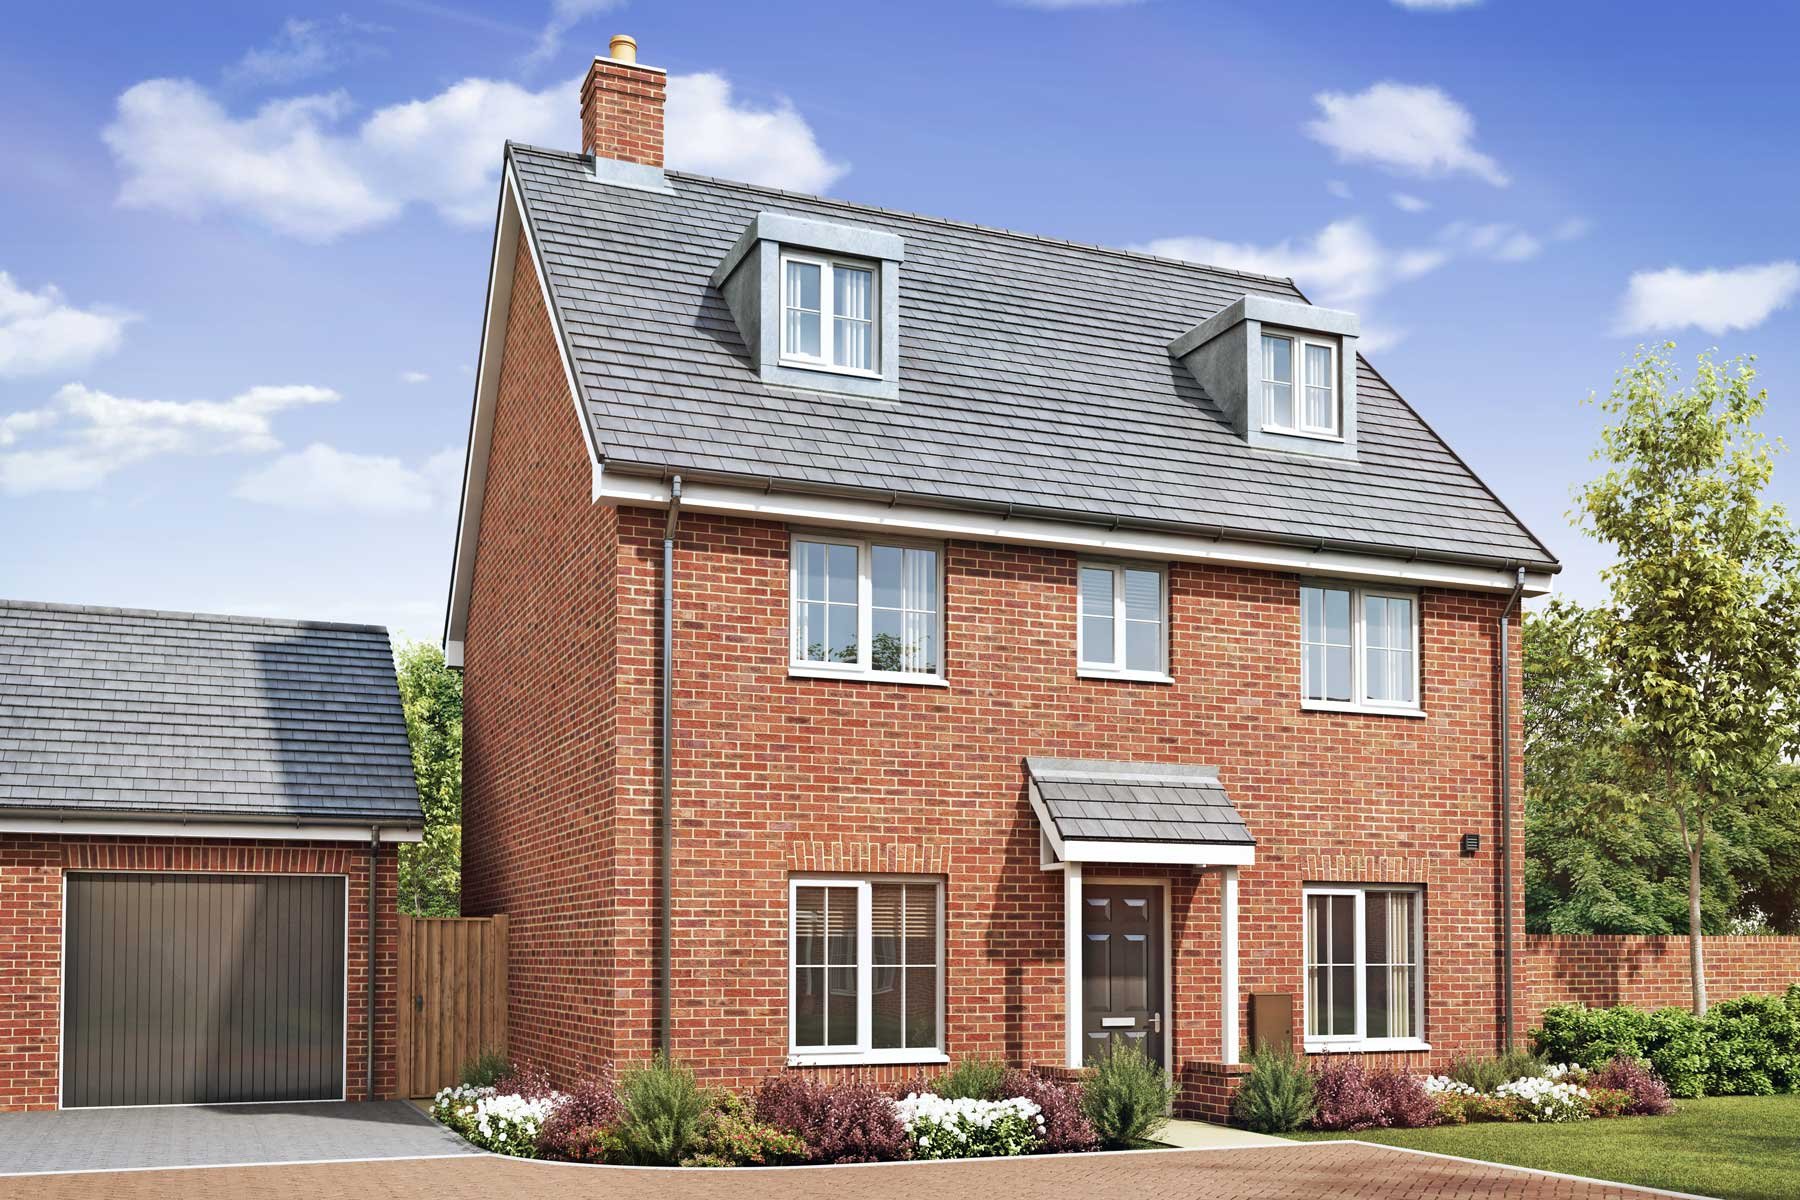 Artist's impression of a typical Felton home